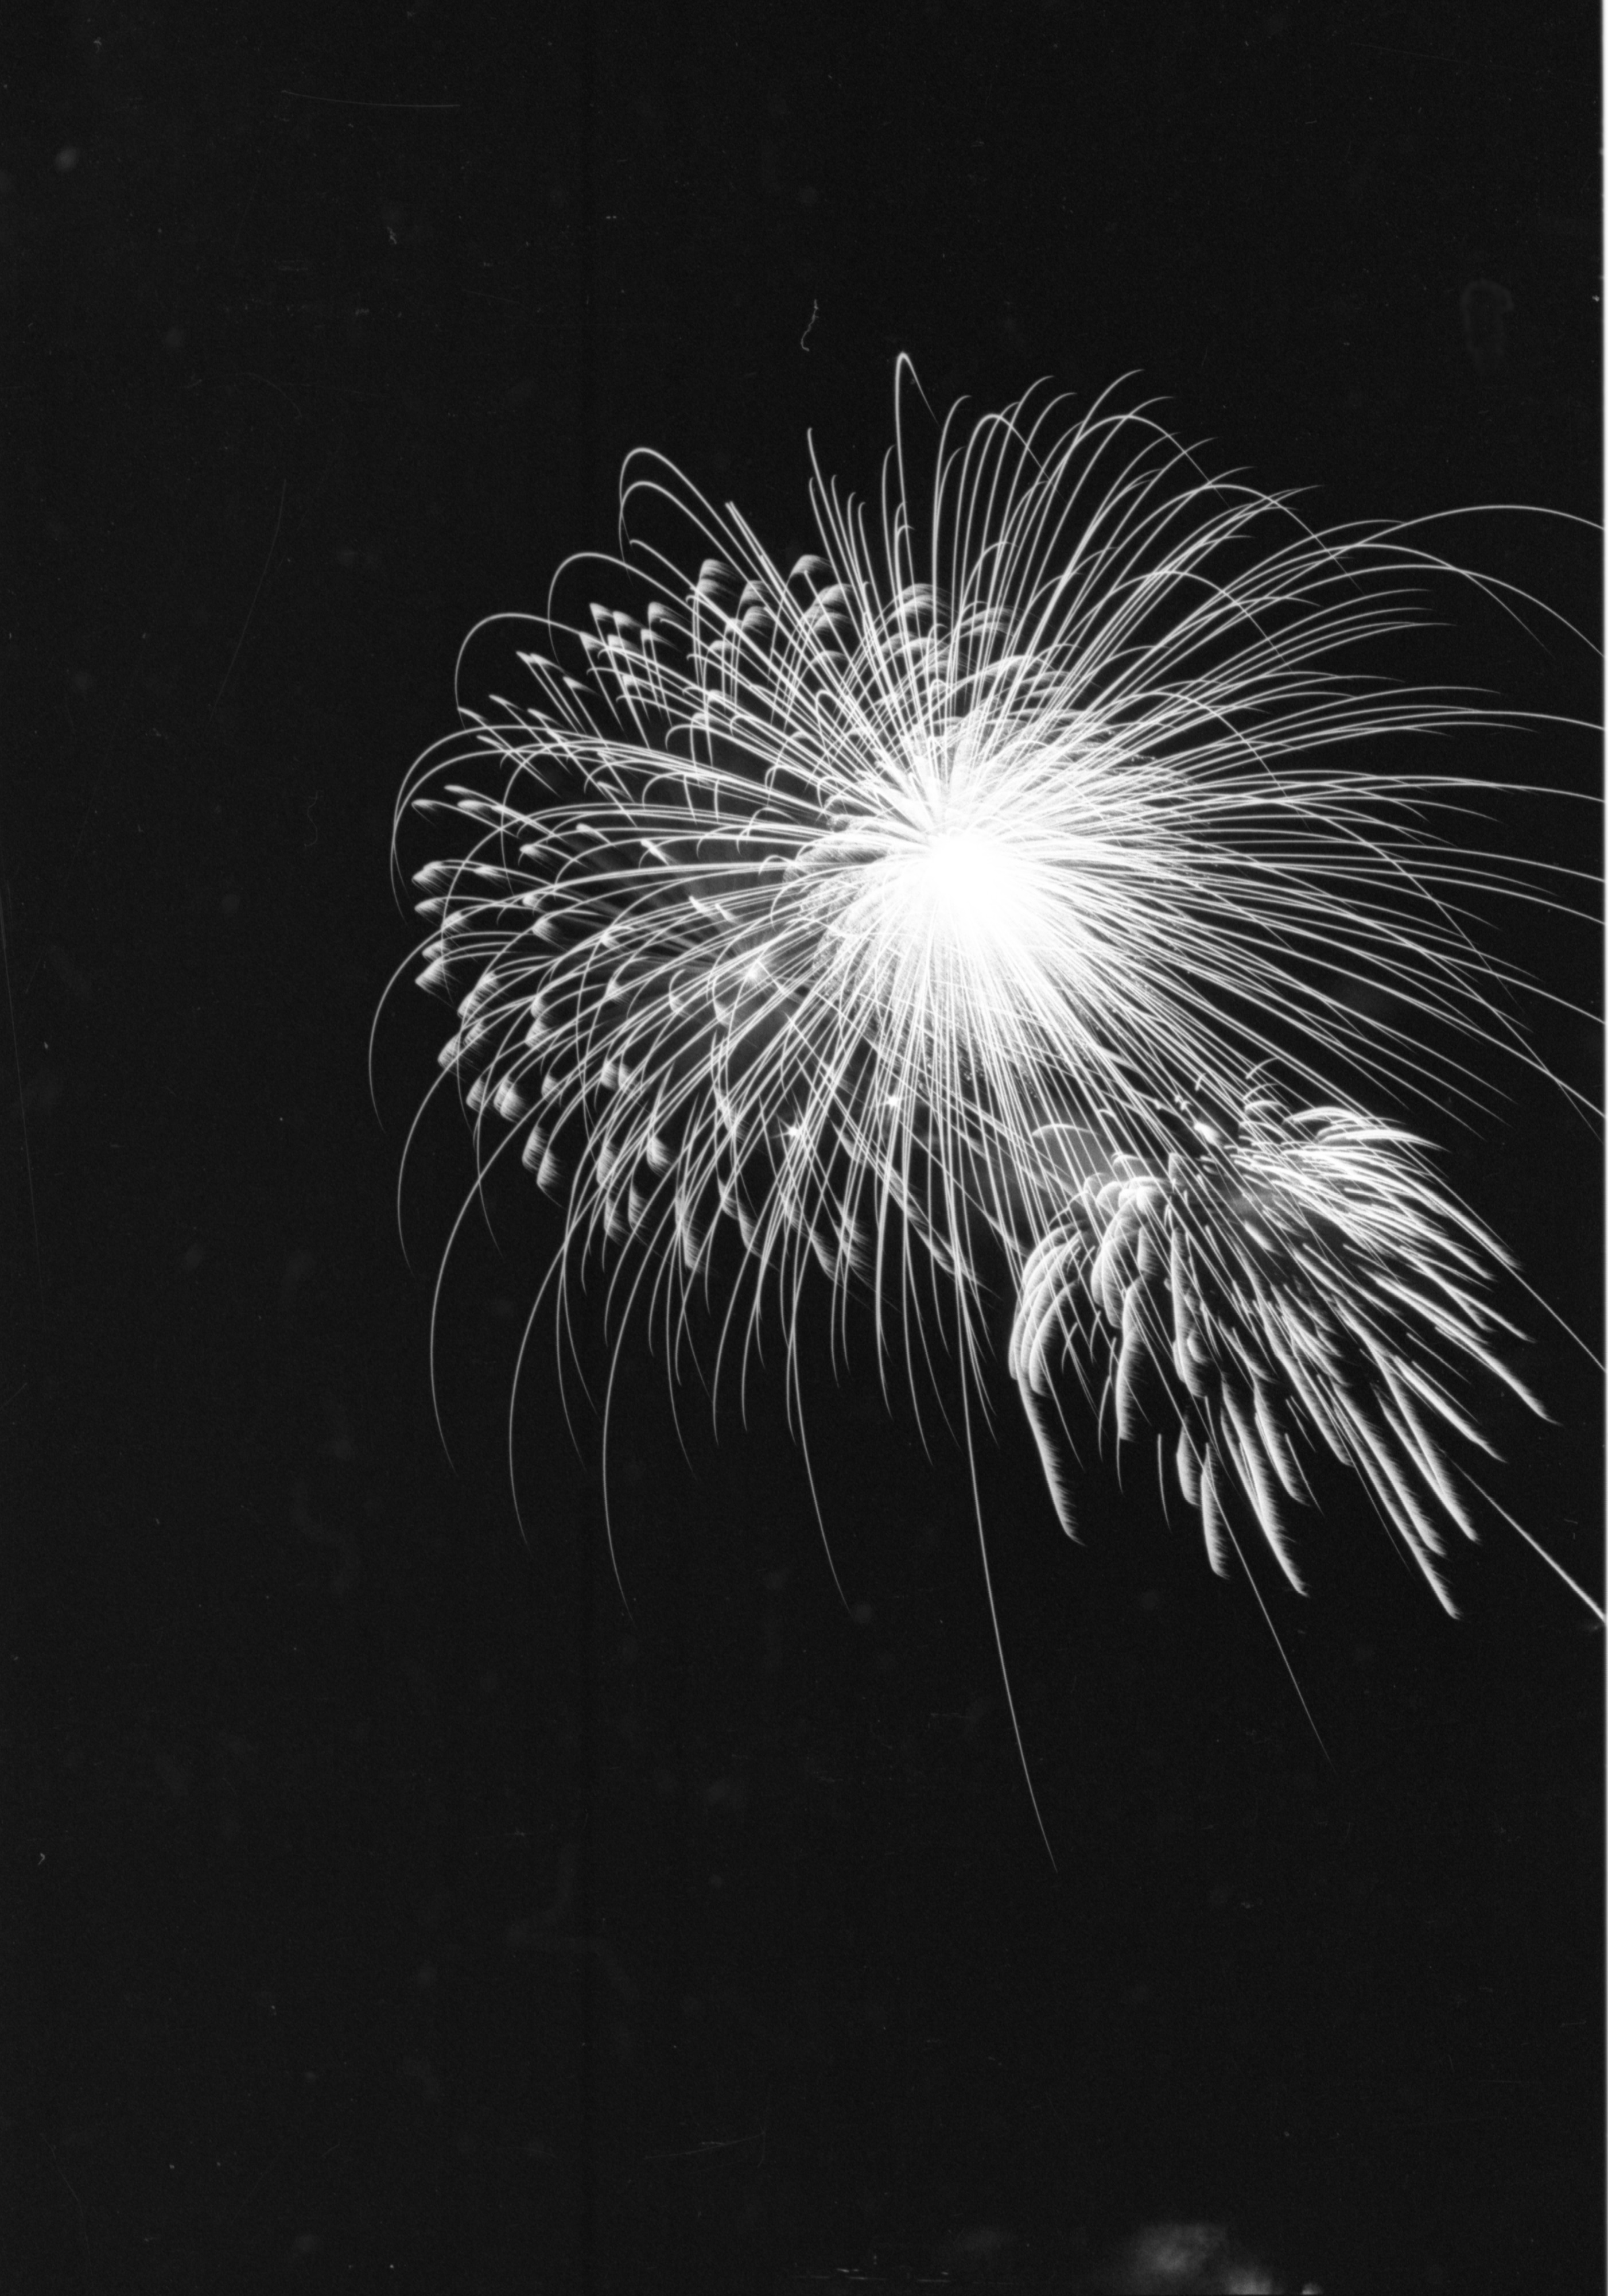 Ann Arbor Jaycees Annual Fireworks Show At The Ann Arbor Airport, June 1984 image